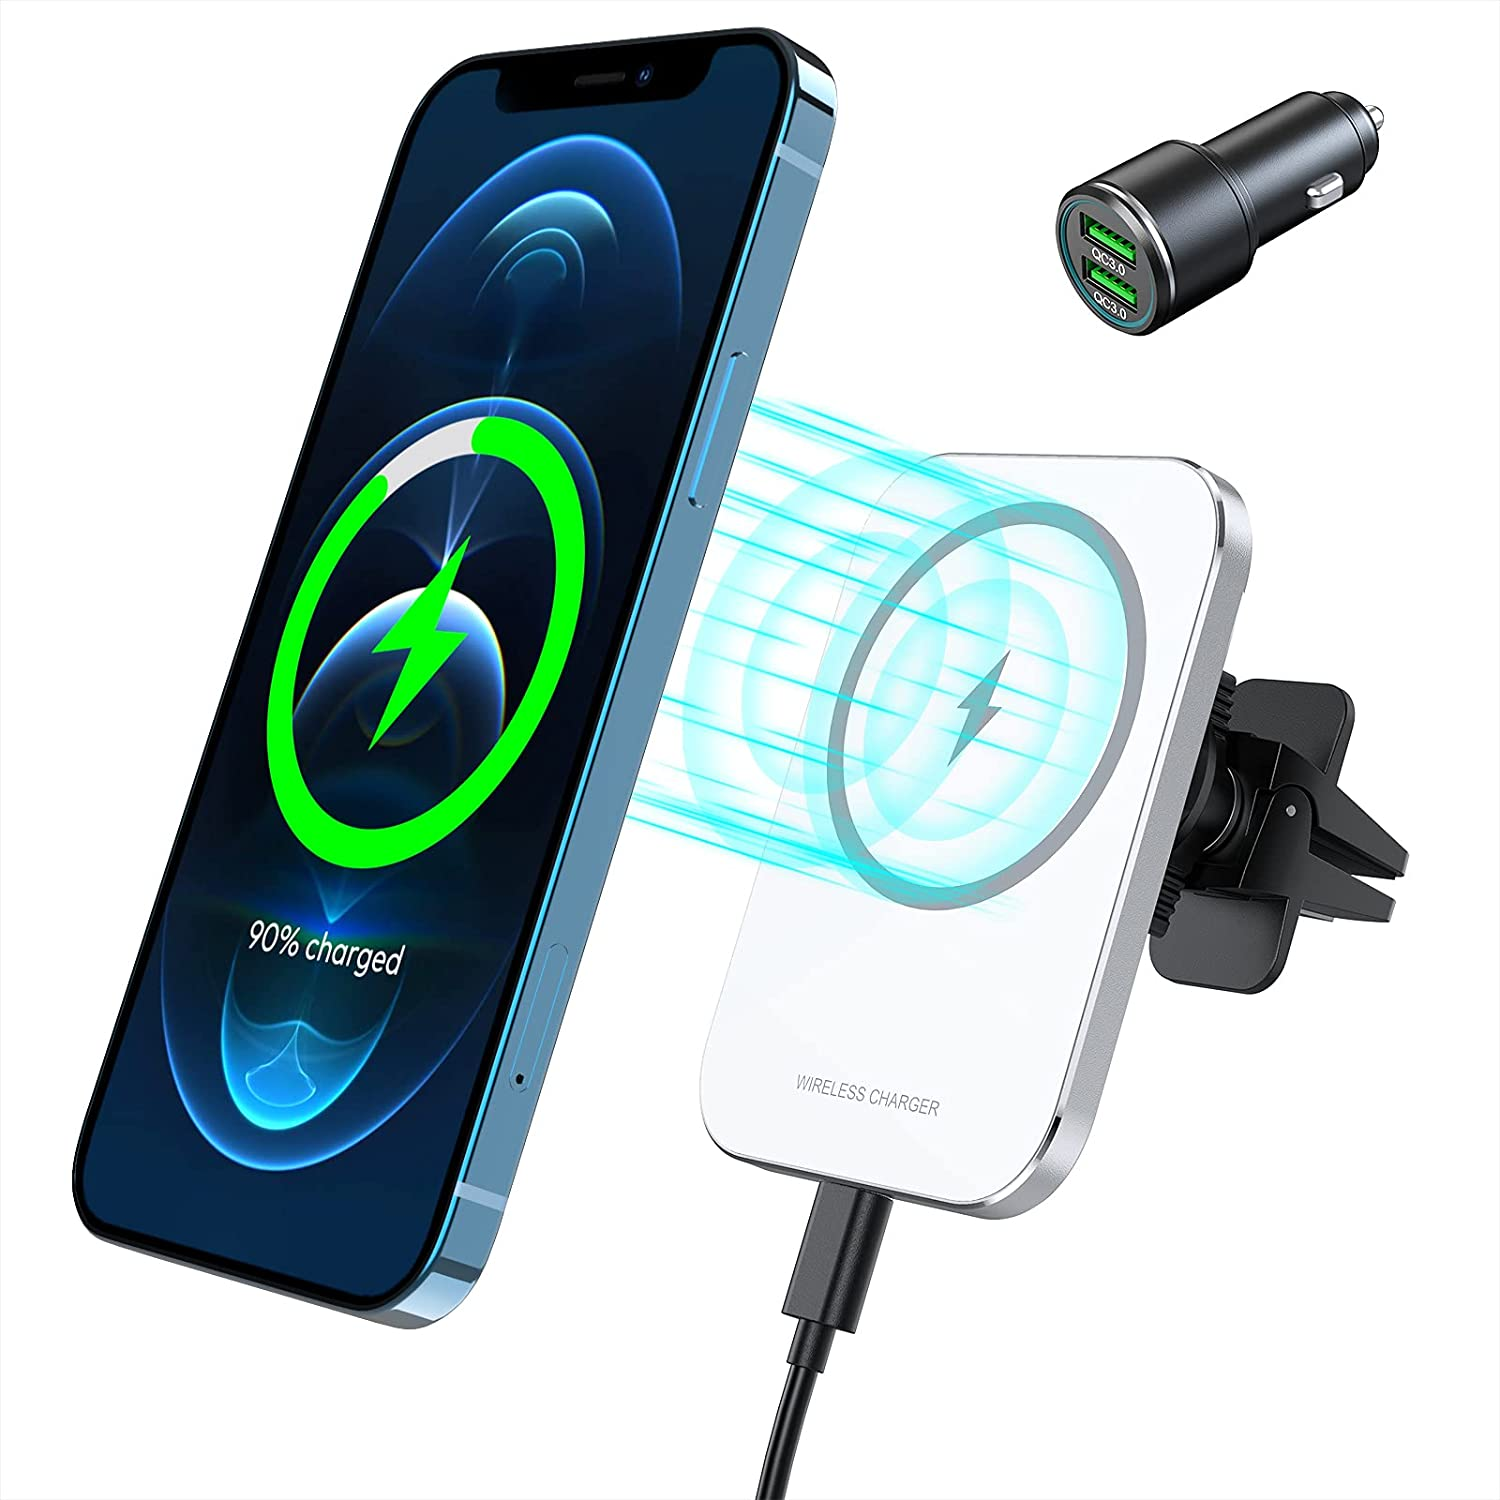 15W Magnetic Wireless Car Charger for iPhone 12/12 Pro/12 Pro Max/12 Mini, Powerful Suction Auto-Alignment Mag-Safe Car Mount, Compatible with MagSafe Cases (with QC 3.0 Car Charger)